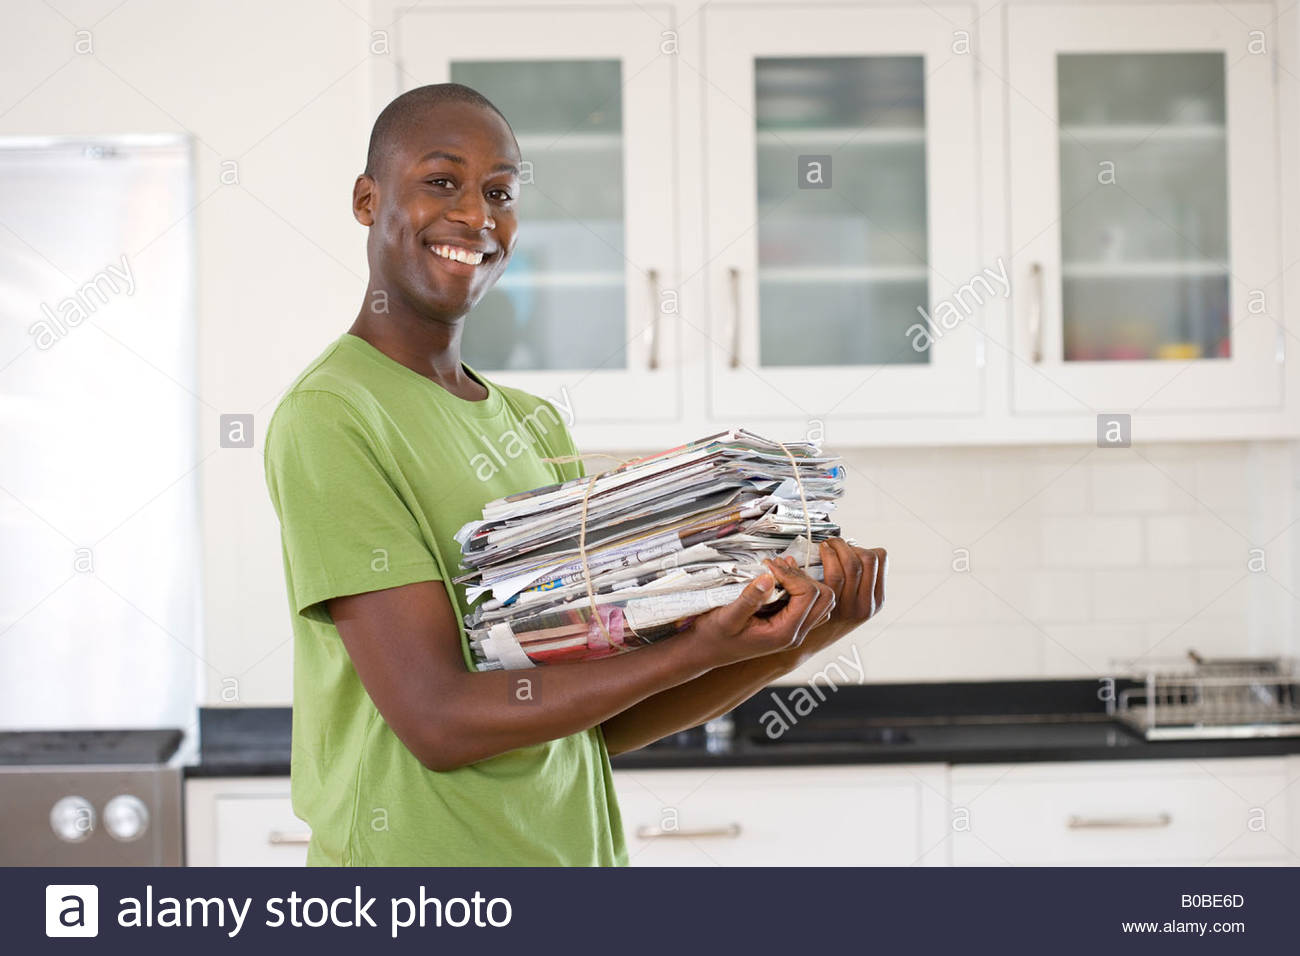 Young man with bundle of newspapers in kitchen, smiling, portrait - Stock Image